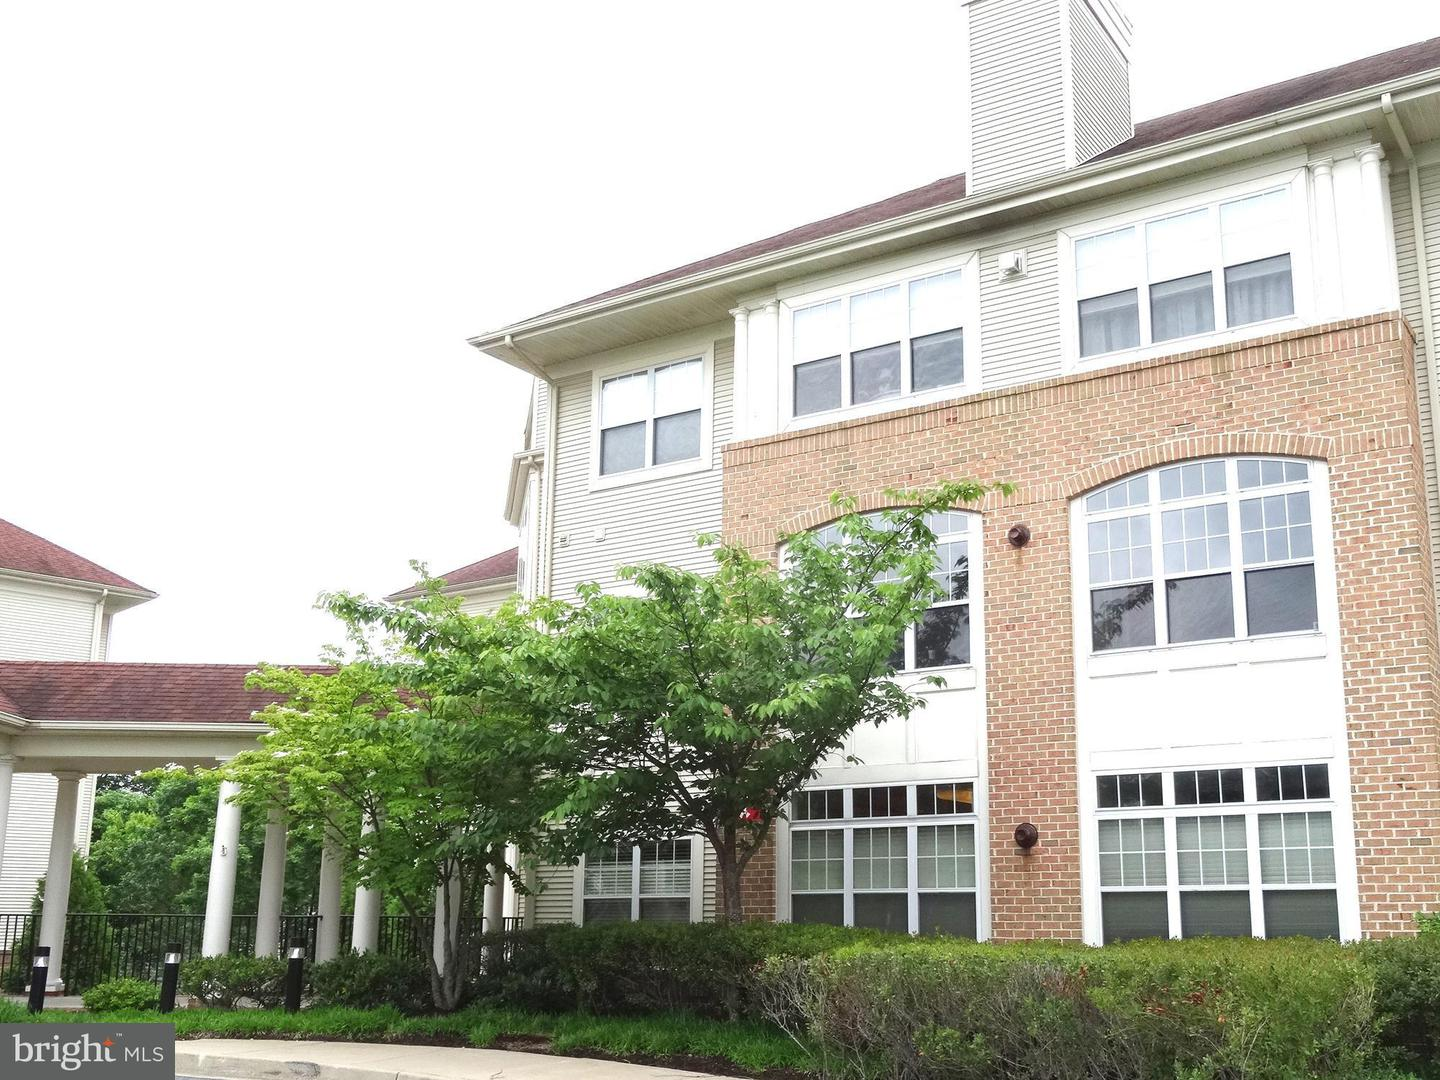 Other Residential for Rent at 2120 Troon Overlook #j306 Woodstock, Maryland 21163 United States